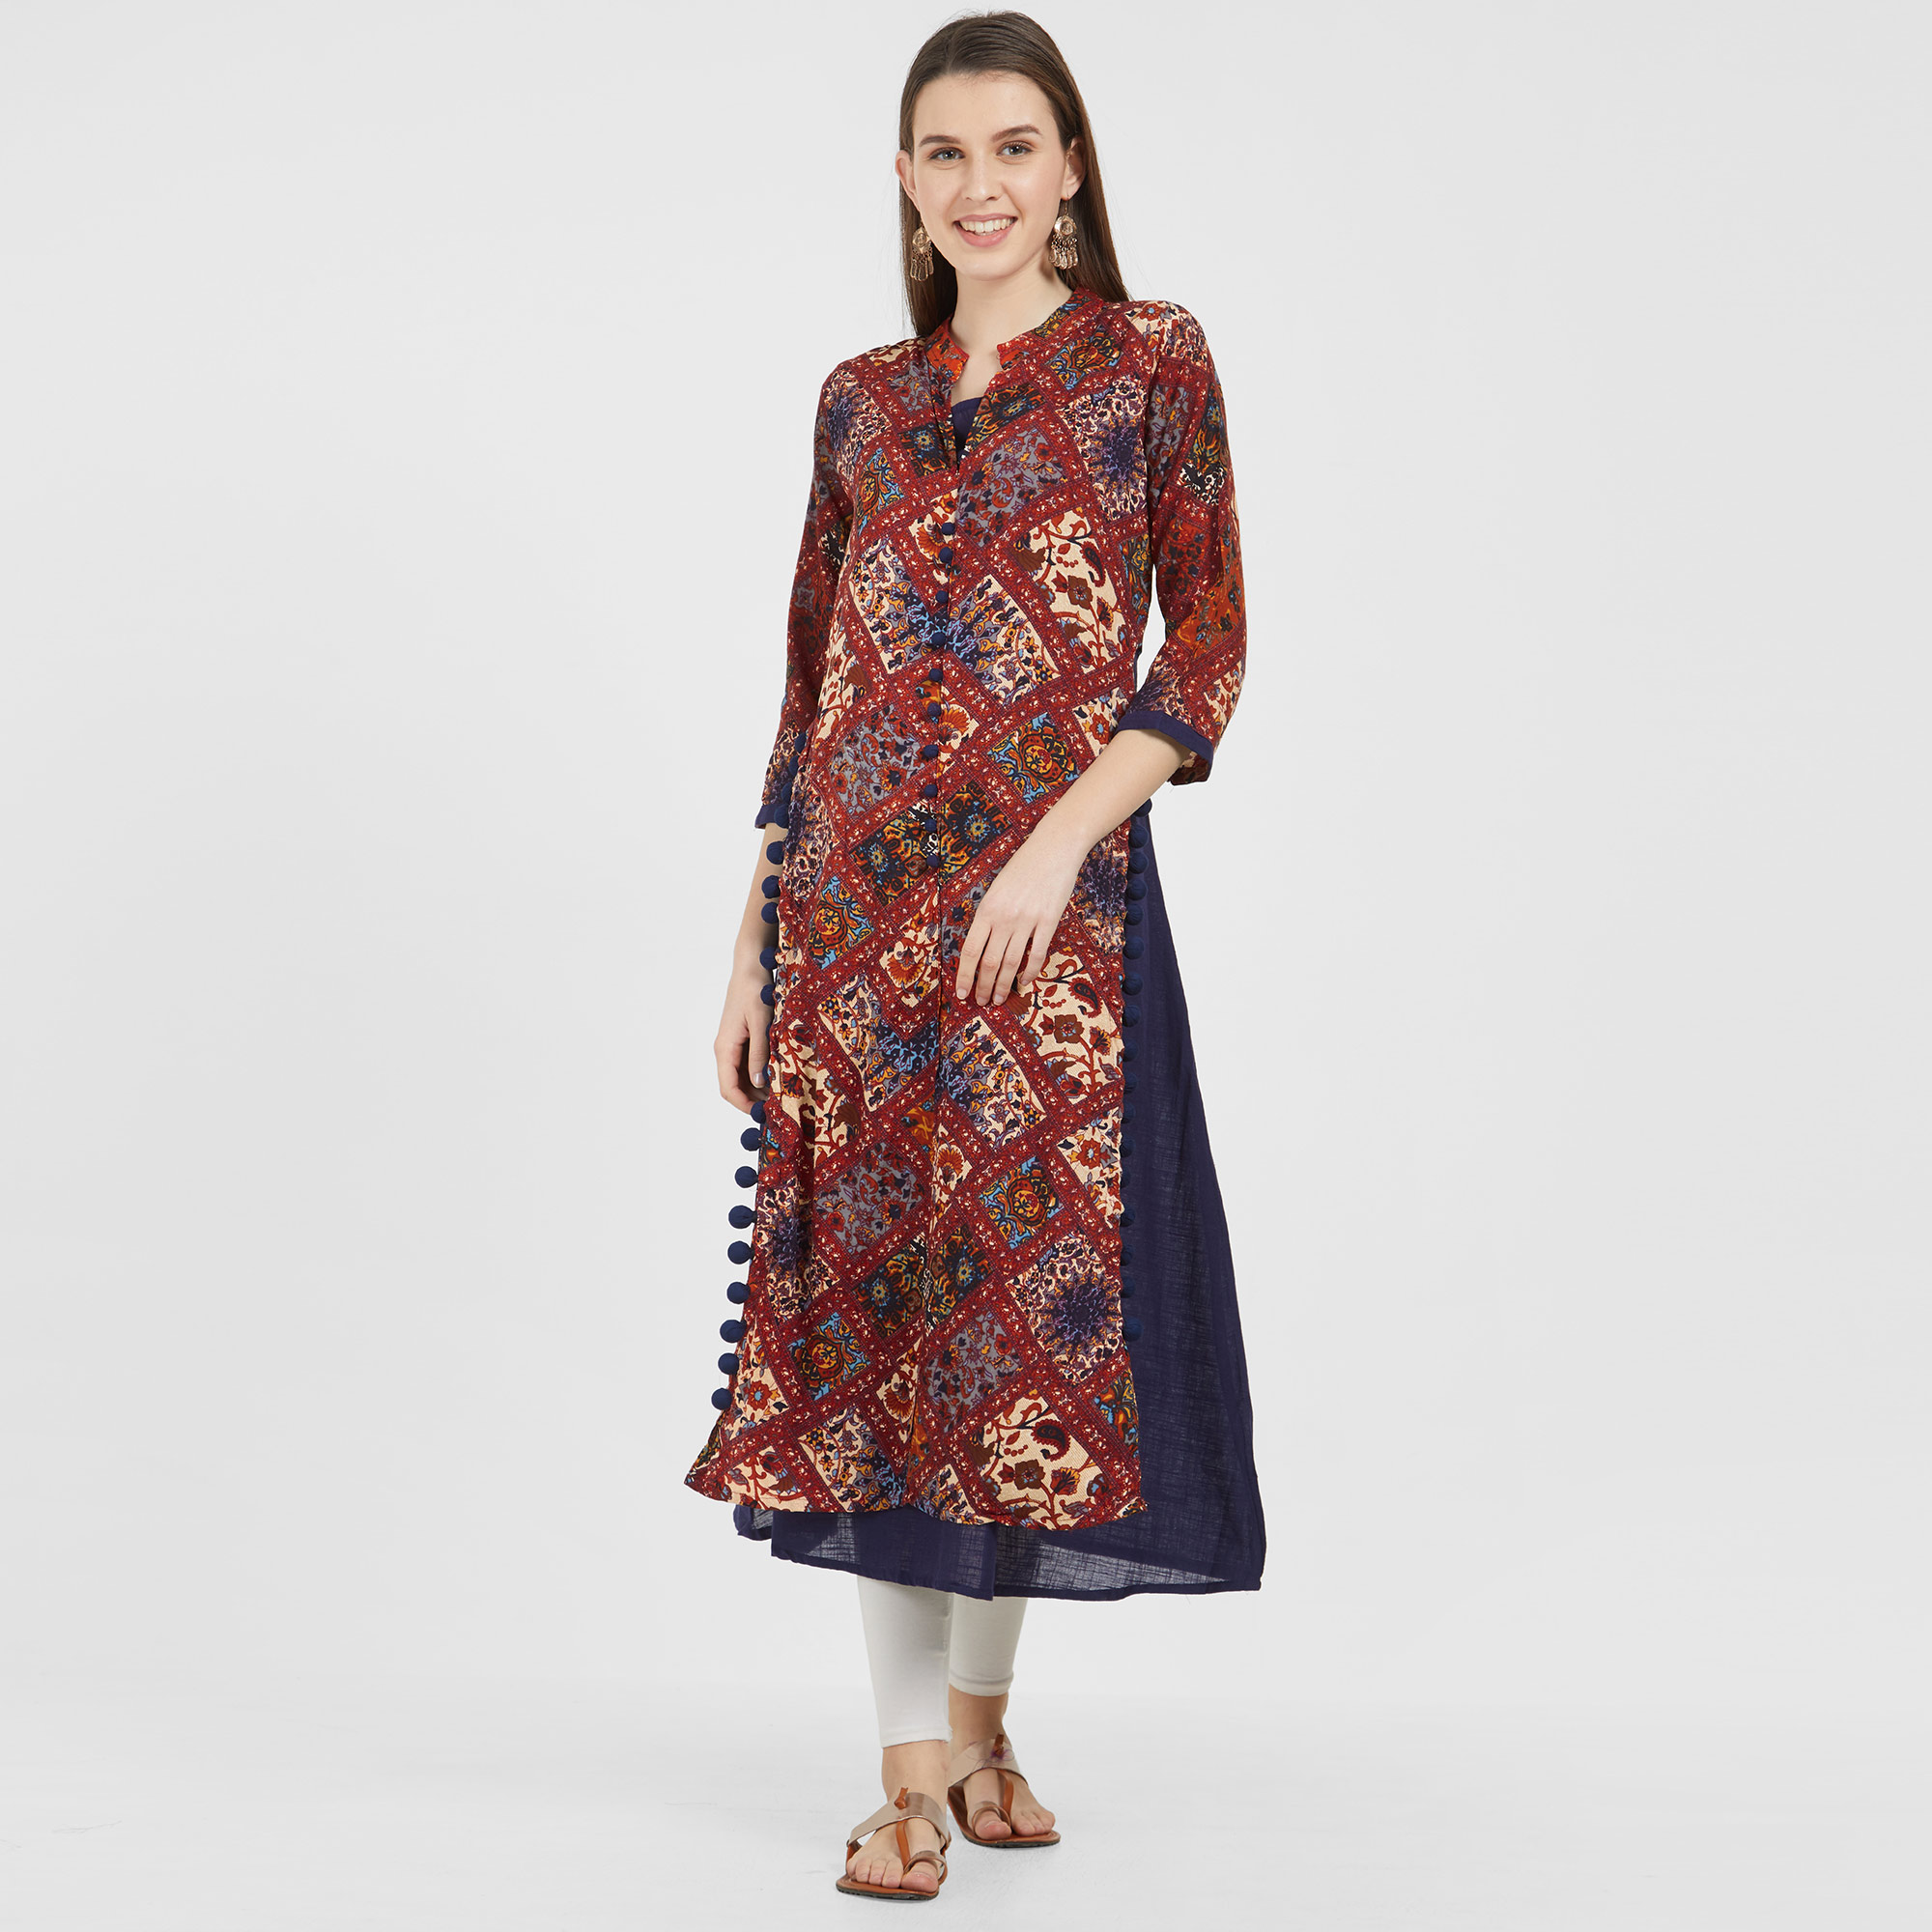 Mesmeric Navy Blue-Maroon Colored Casual Wear Printed Cotton-Rayon Kurti